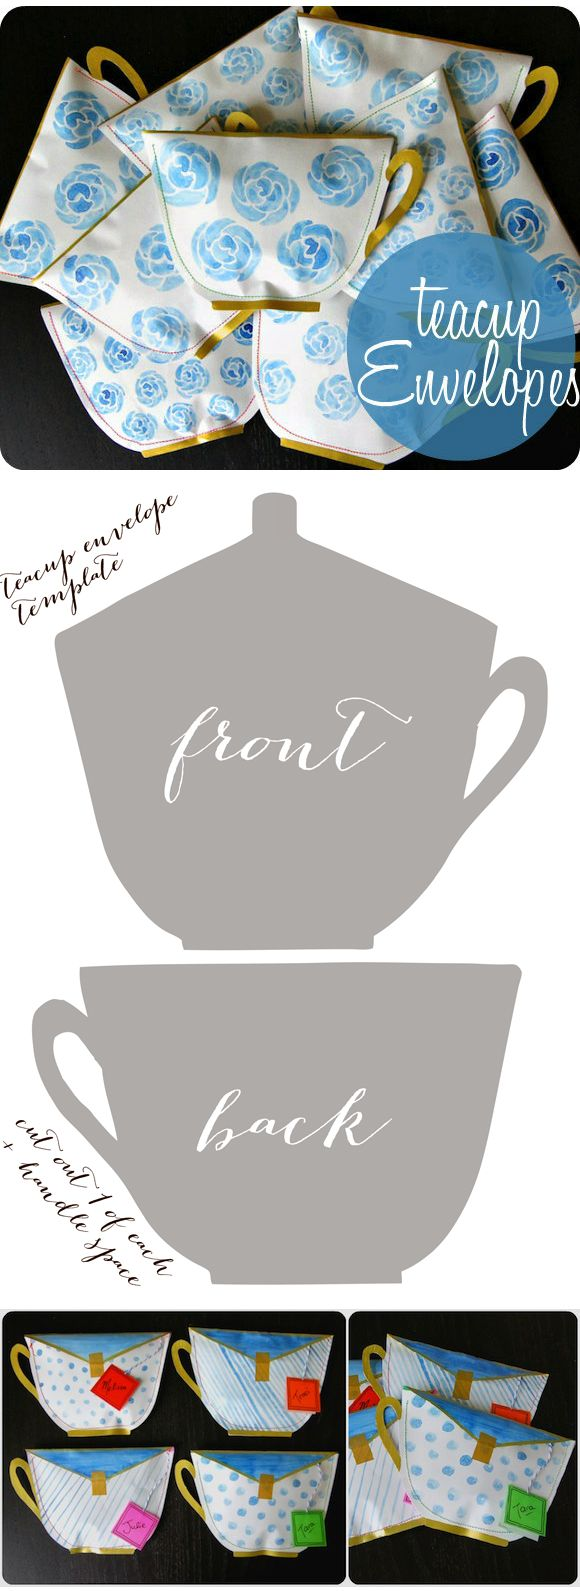 A teacup envelope design